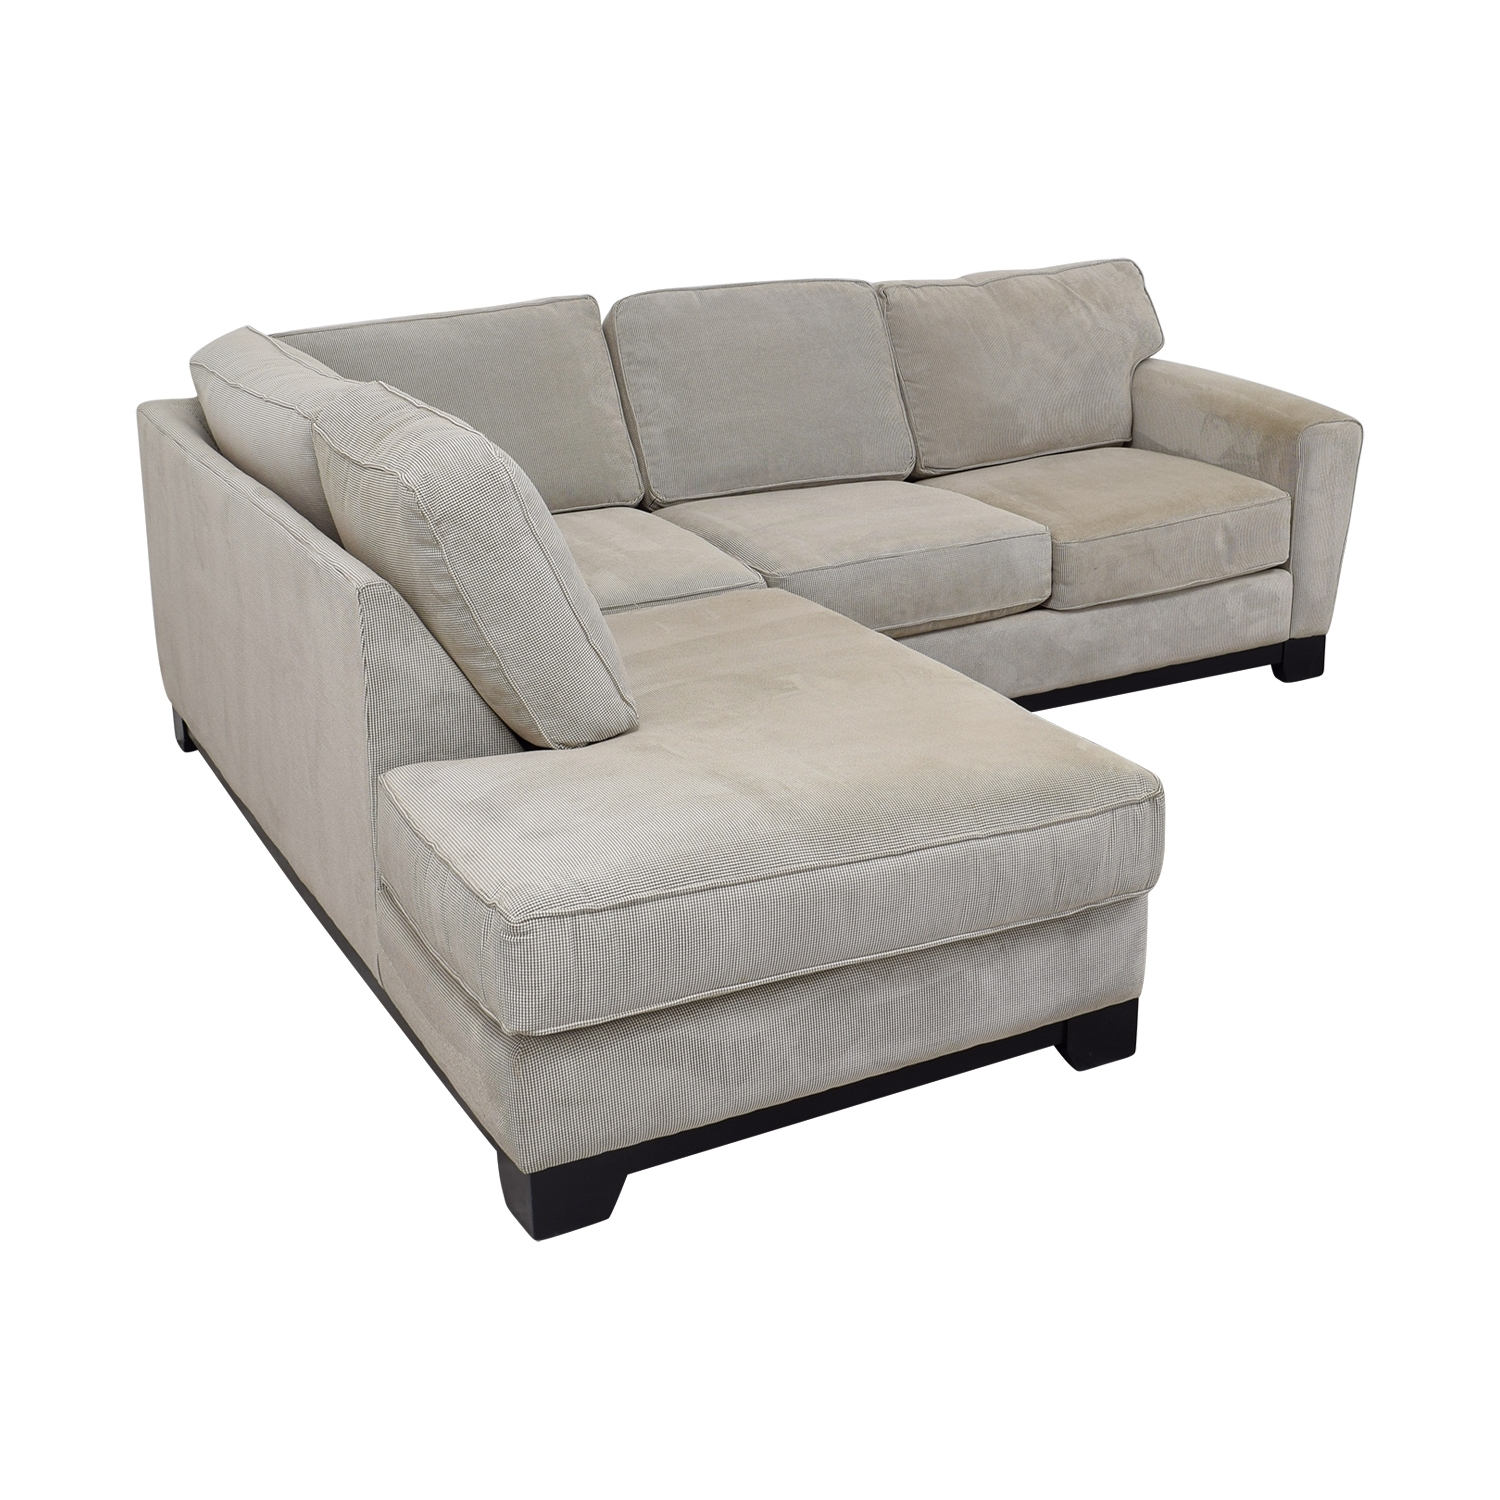 [%80% Off – Jordan's Furniture Jordan's Furniture Beige L Shaped Intended For Most Popular Jordans Sectional Sofas|Jordans Sectional Sofas Regarding Well Known 80% Off – Jordan's Furniture Jordan's Furniture Beige L Shaped|Well Liked Jordans Sectional Sofas With 80% Off – Jordan's Furniture Jordan's Furniture Beige L Shaped|Well Known 80% Off – Jordan's Furniture Jordan's Furniture Beige L Shaped For Jordans Sectional Sofas%] (View 3 of 15)